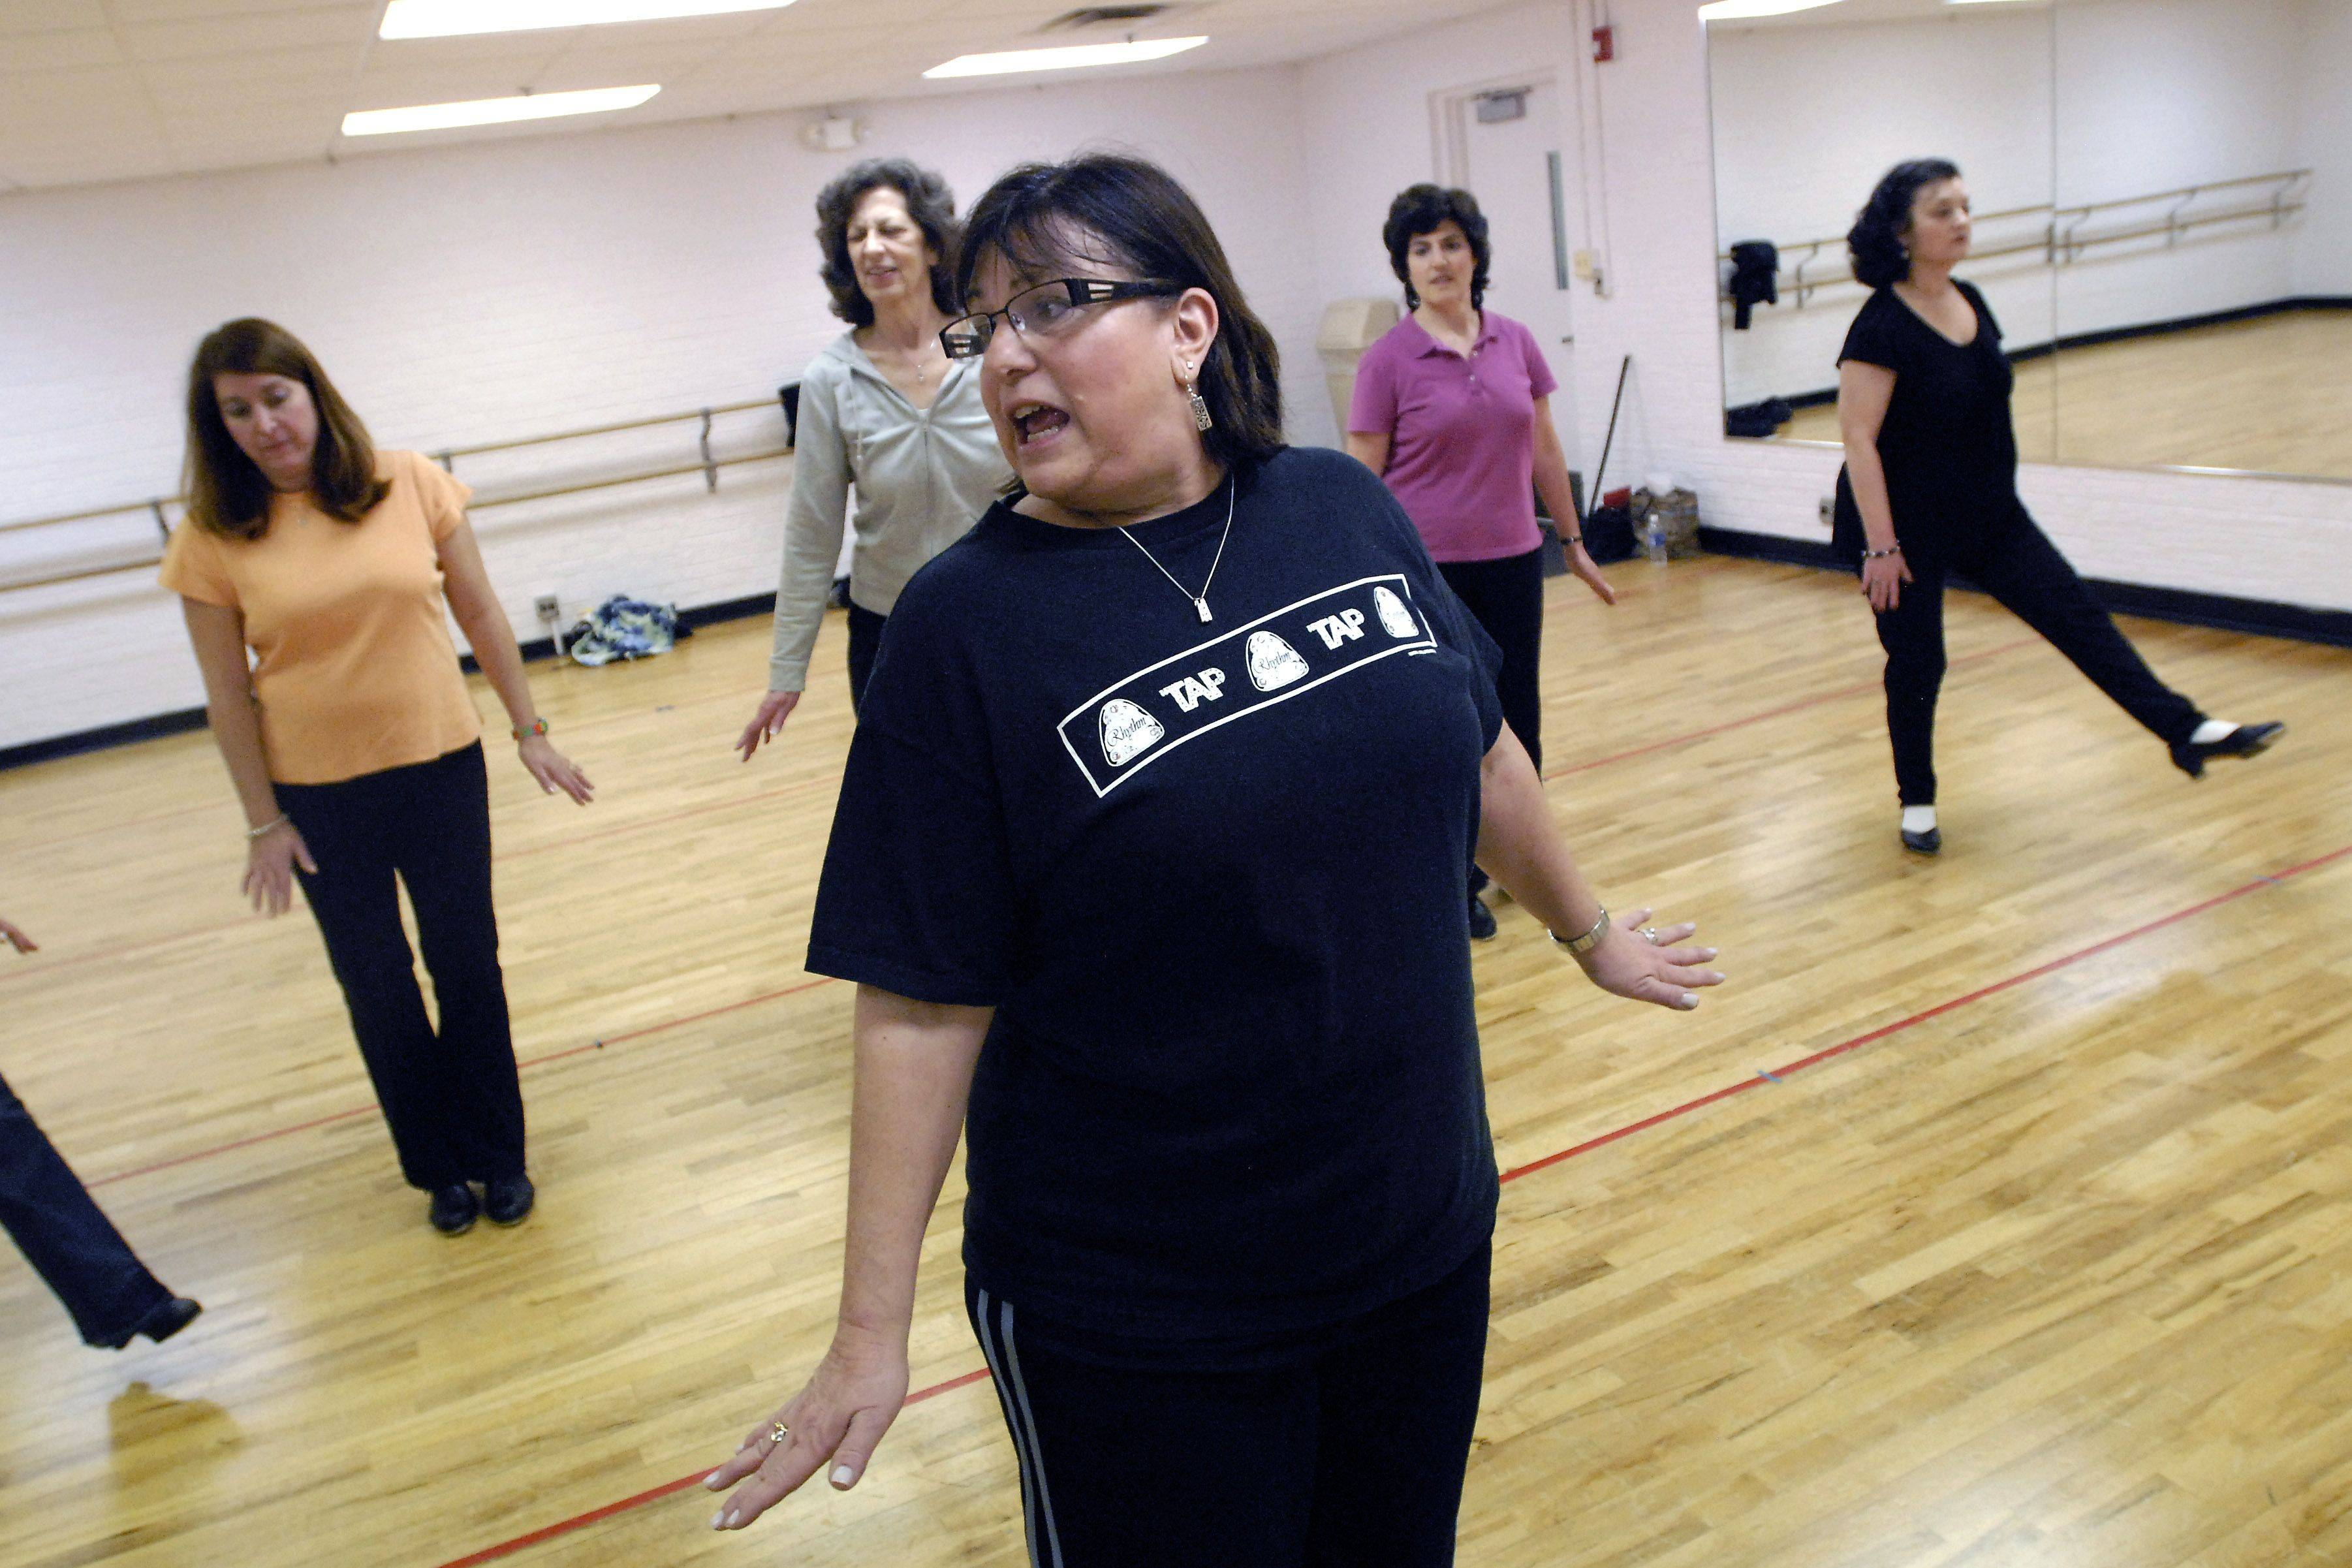 Instructor Franci Galinsky shows students a new routine during advanced tap-dancing class at Emmerich Park in Buffalo Grove.